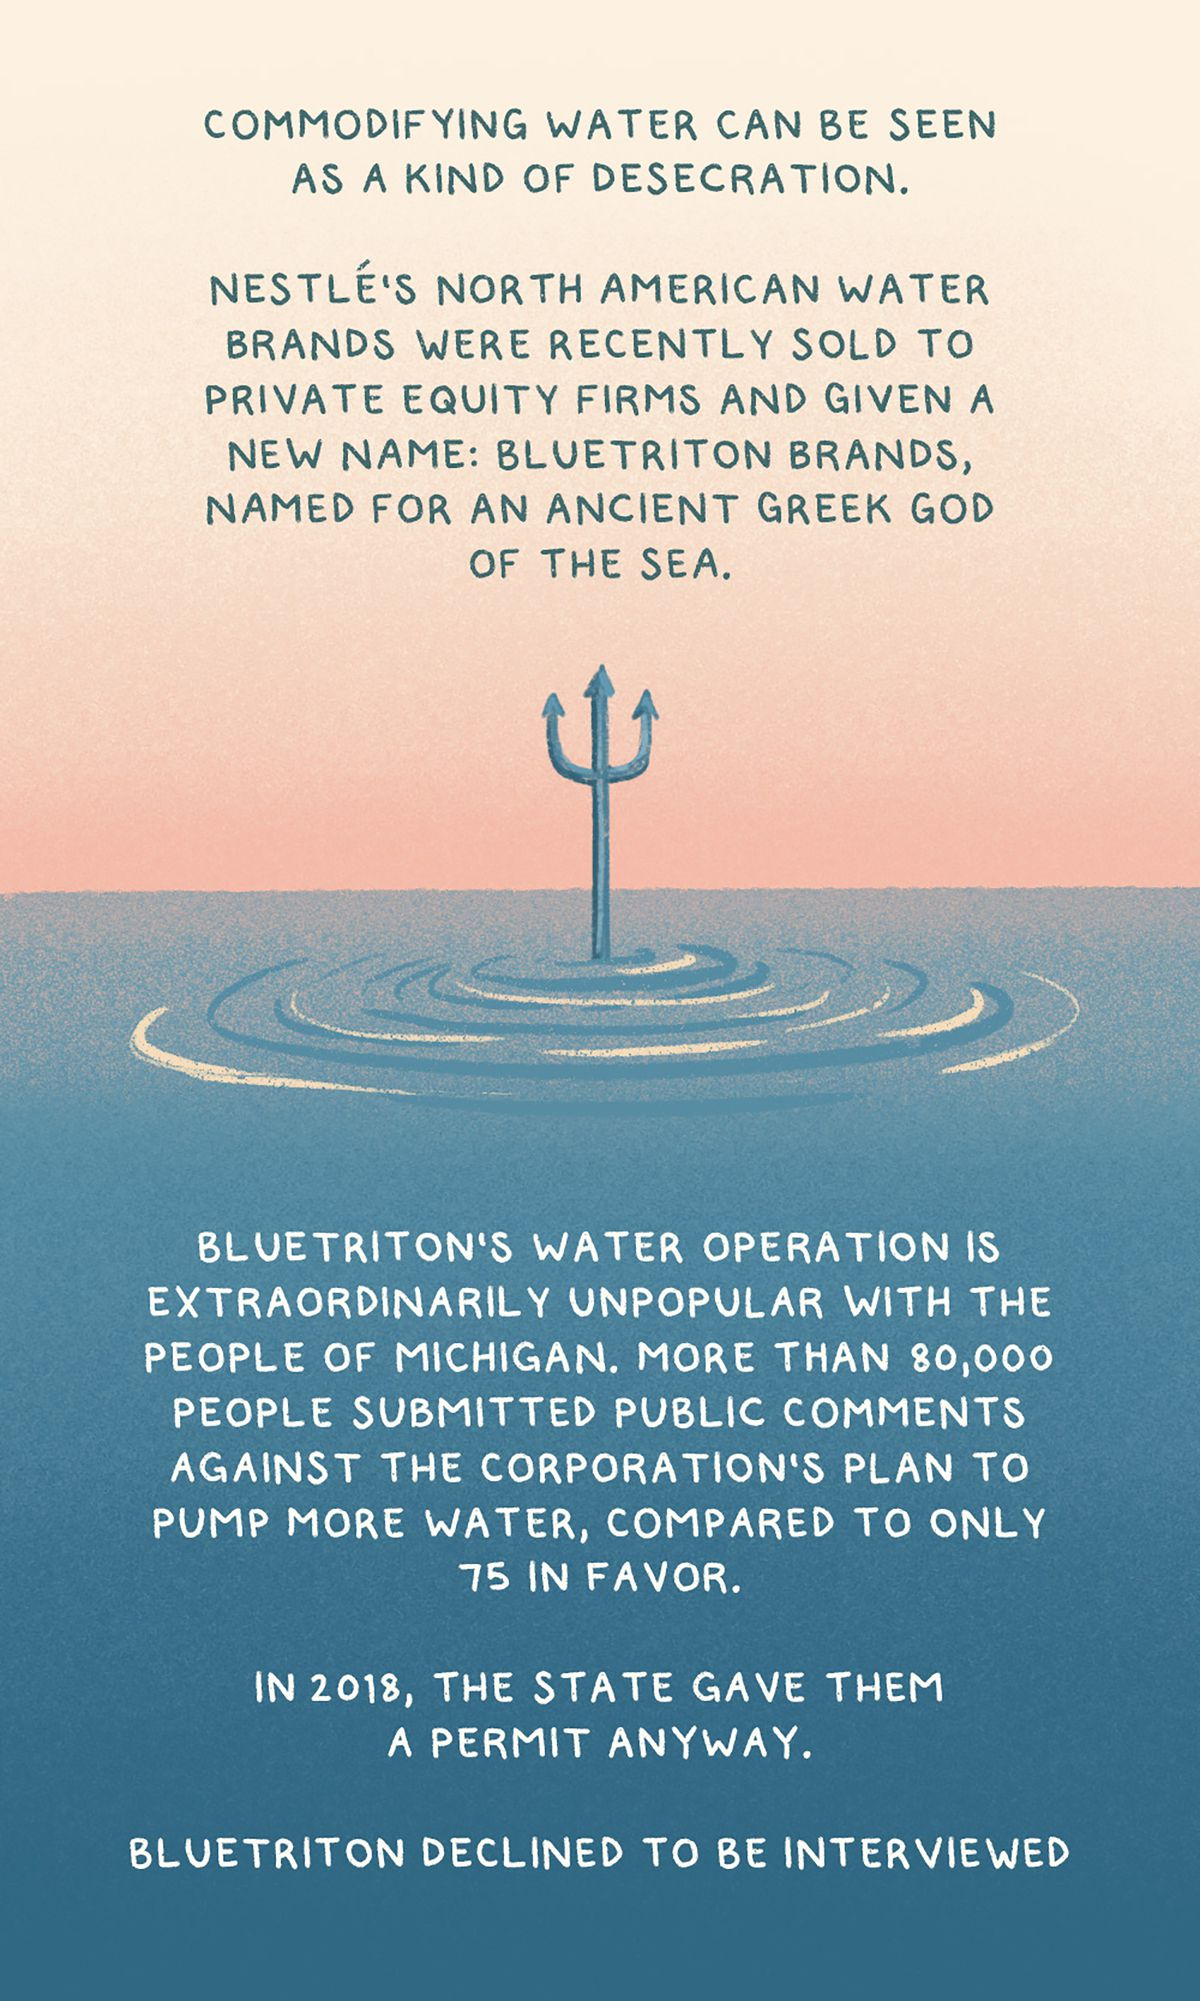 """""""Commodifying water can be seen as a kind of desecration. Nestlé's North American water brands were recently sold to private equity firms and given a new name: BlueTriton Brands, named for an ancient Greek god of the sea.BlueTriton's water operation is extraordinarily unpopular with the people of Michigan. More than 80,000 people submitted public comments against the corporation's plan to pump more water, compared to only 75 in favor. In 2018, the state gave them a permit anyway."""""""